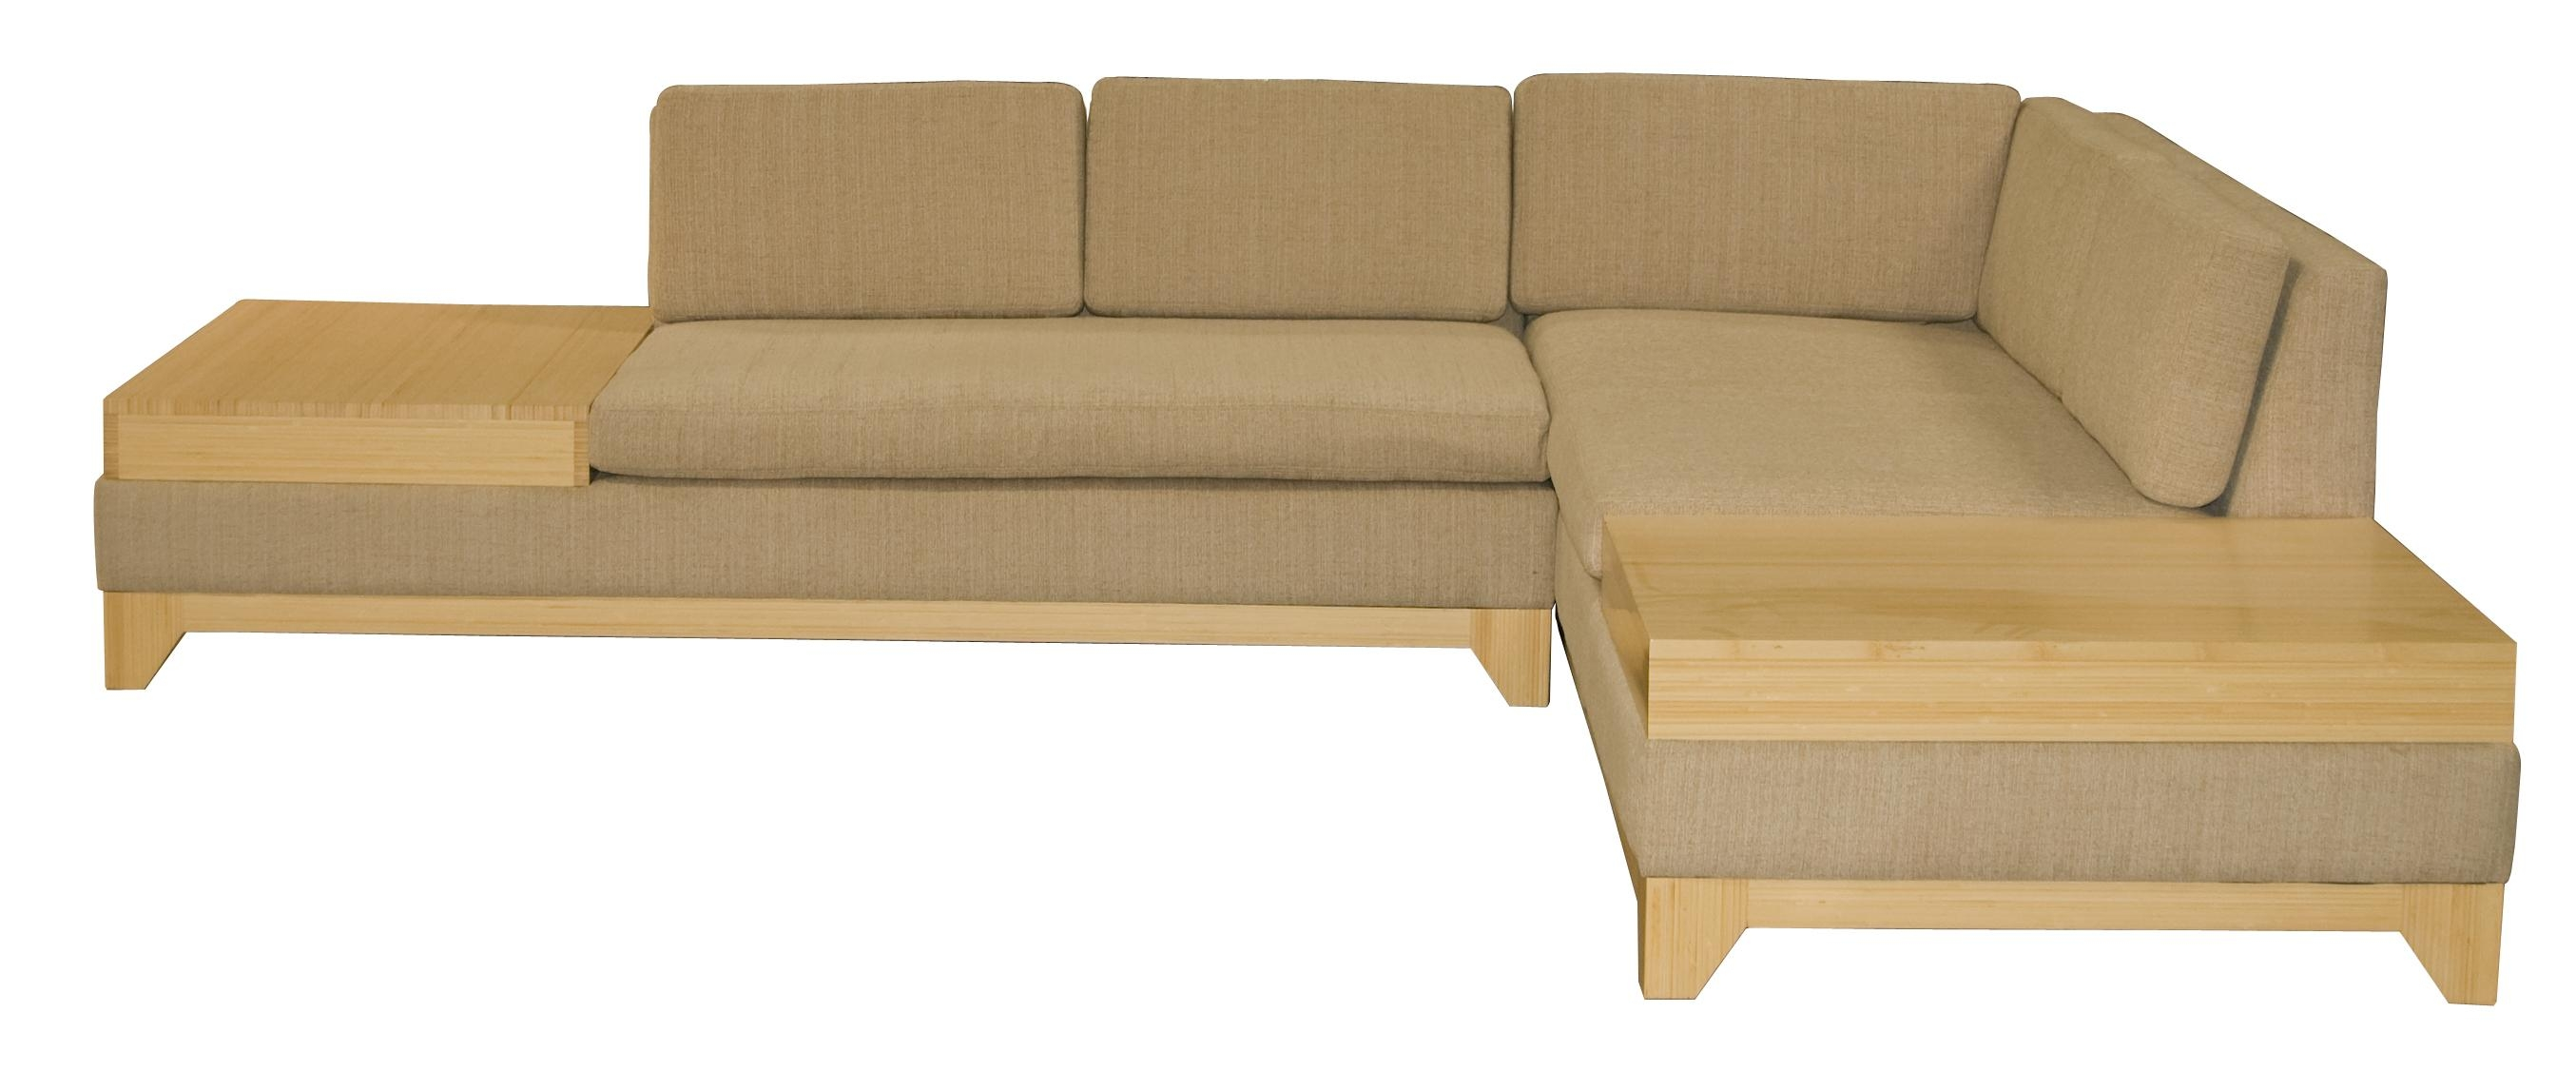 The Sofa Company Offers Customers Green Furnishings For The Home Regarding Bambo Sofas (View 3 of 22)